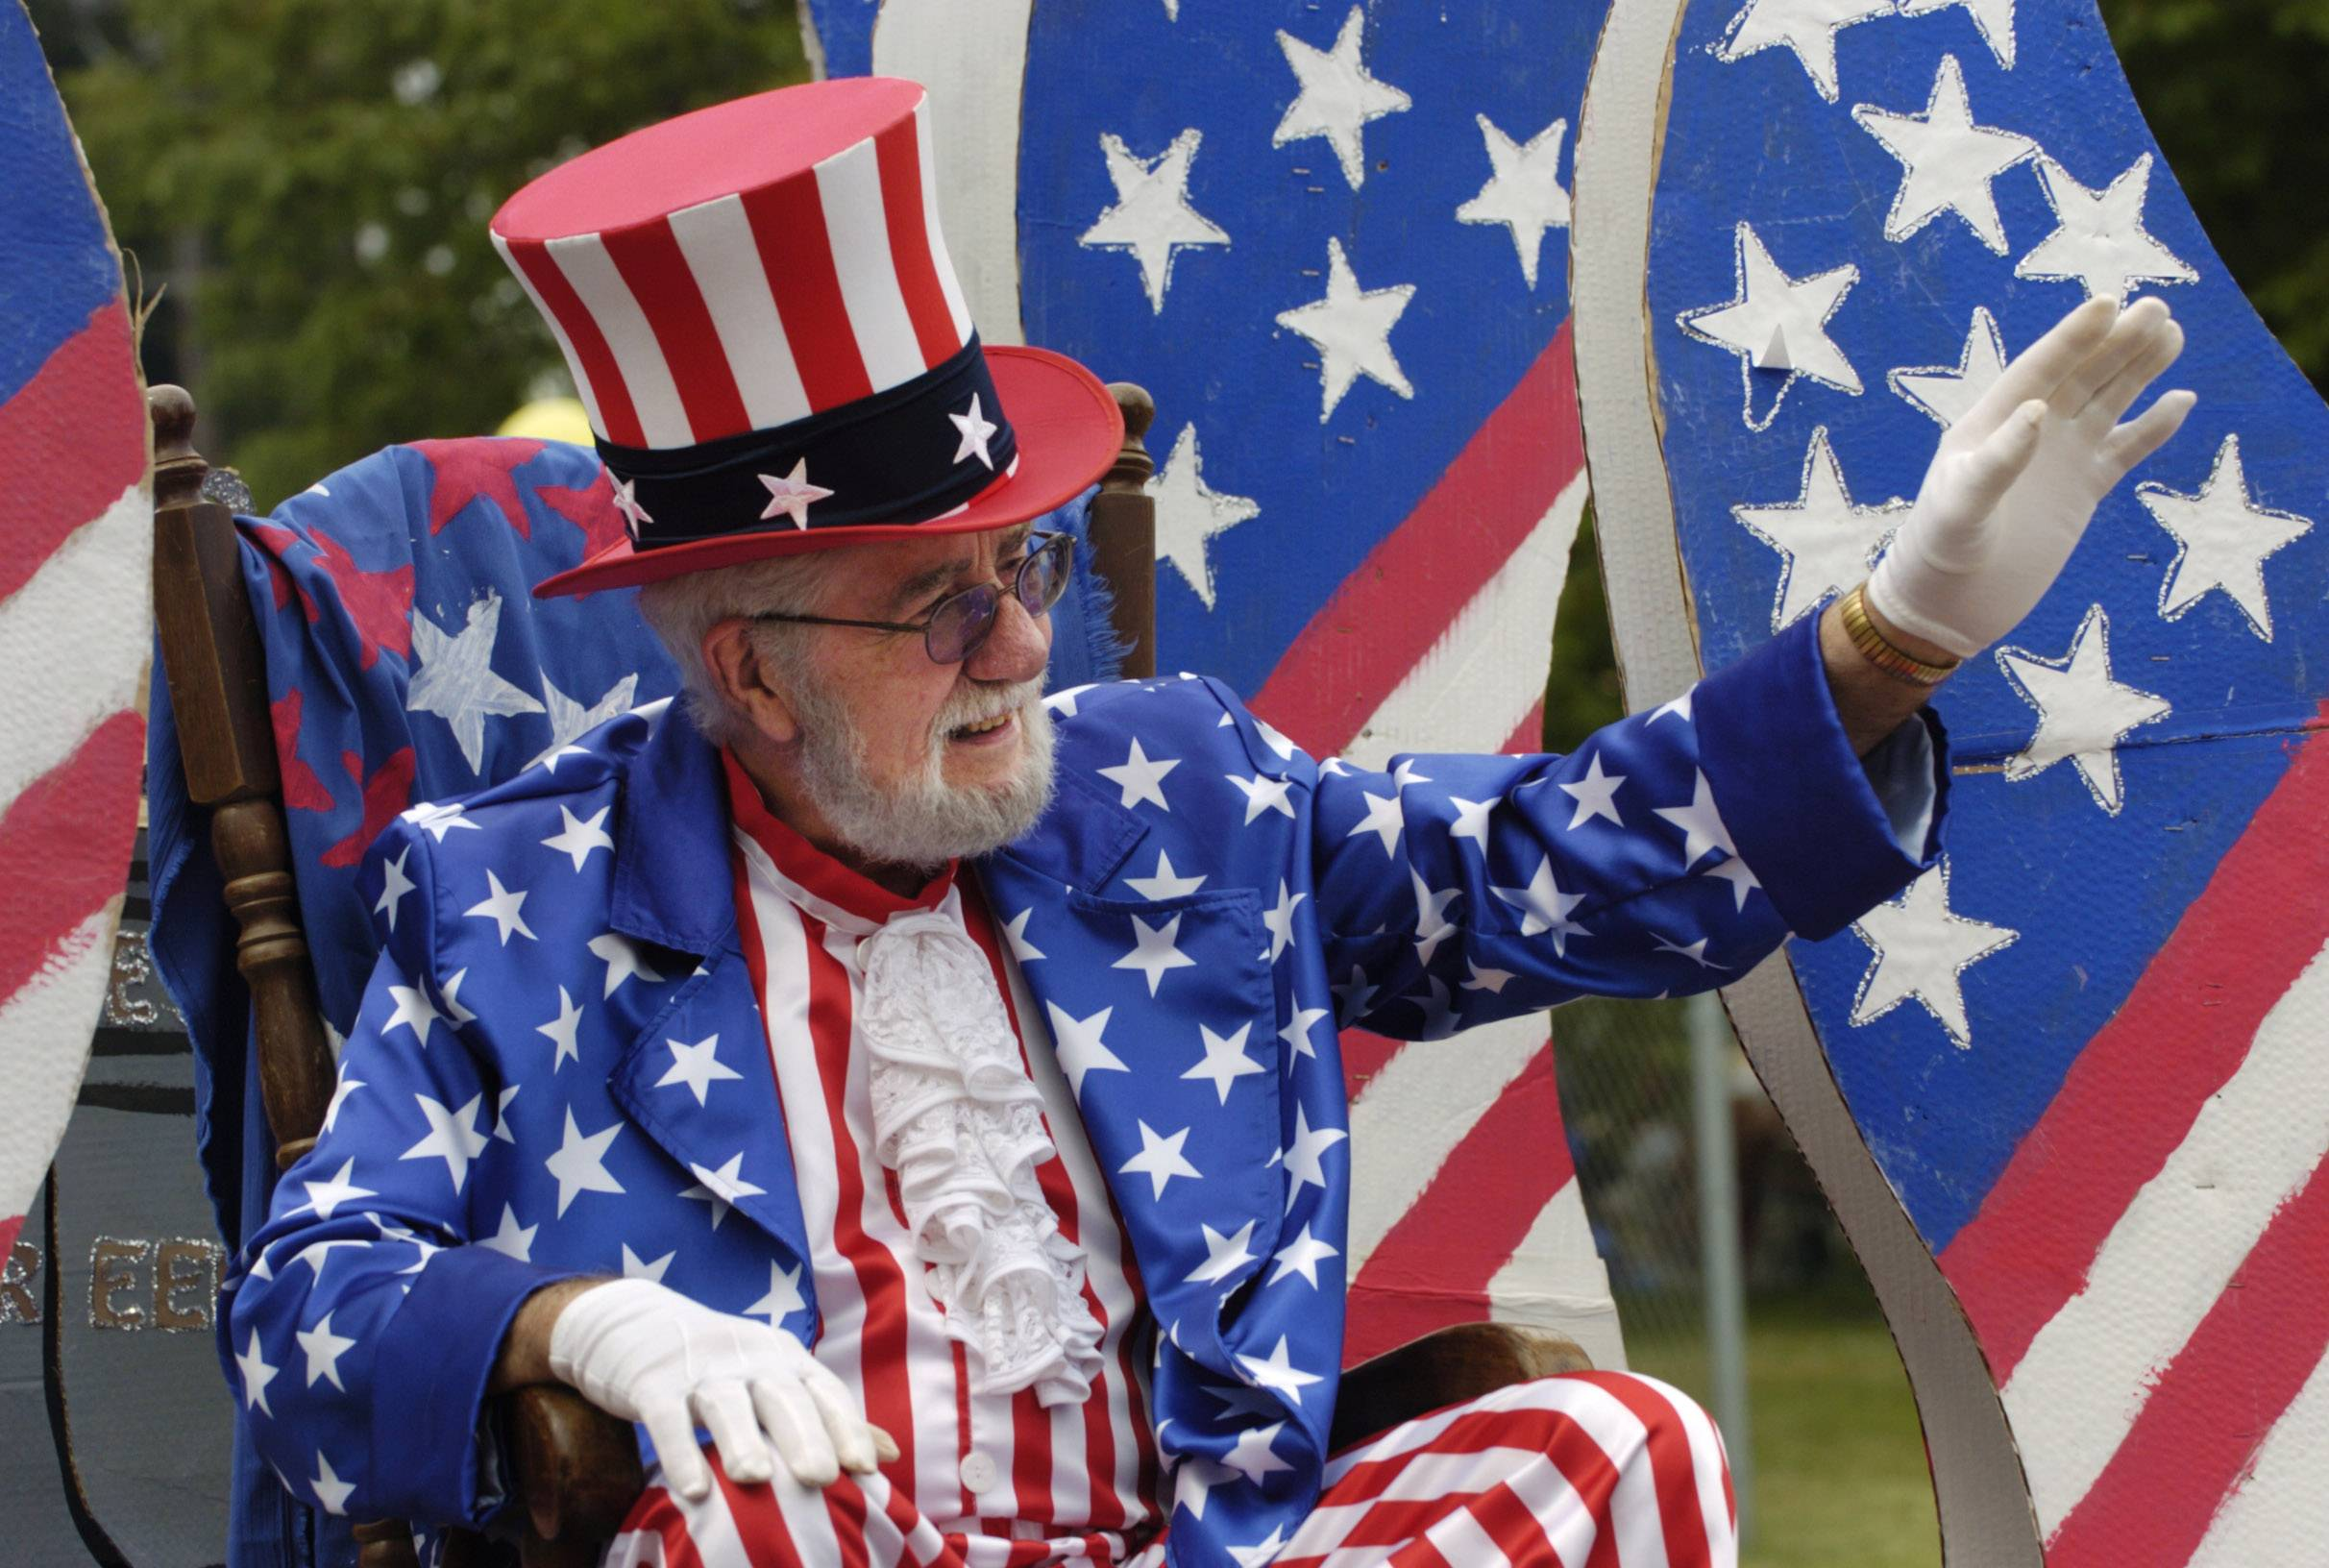 You might see Uncle Sam in a Fourth of July parade near you this weekend.